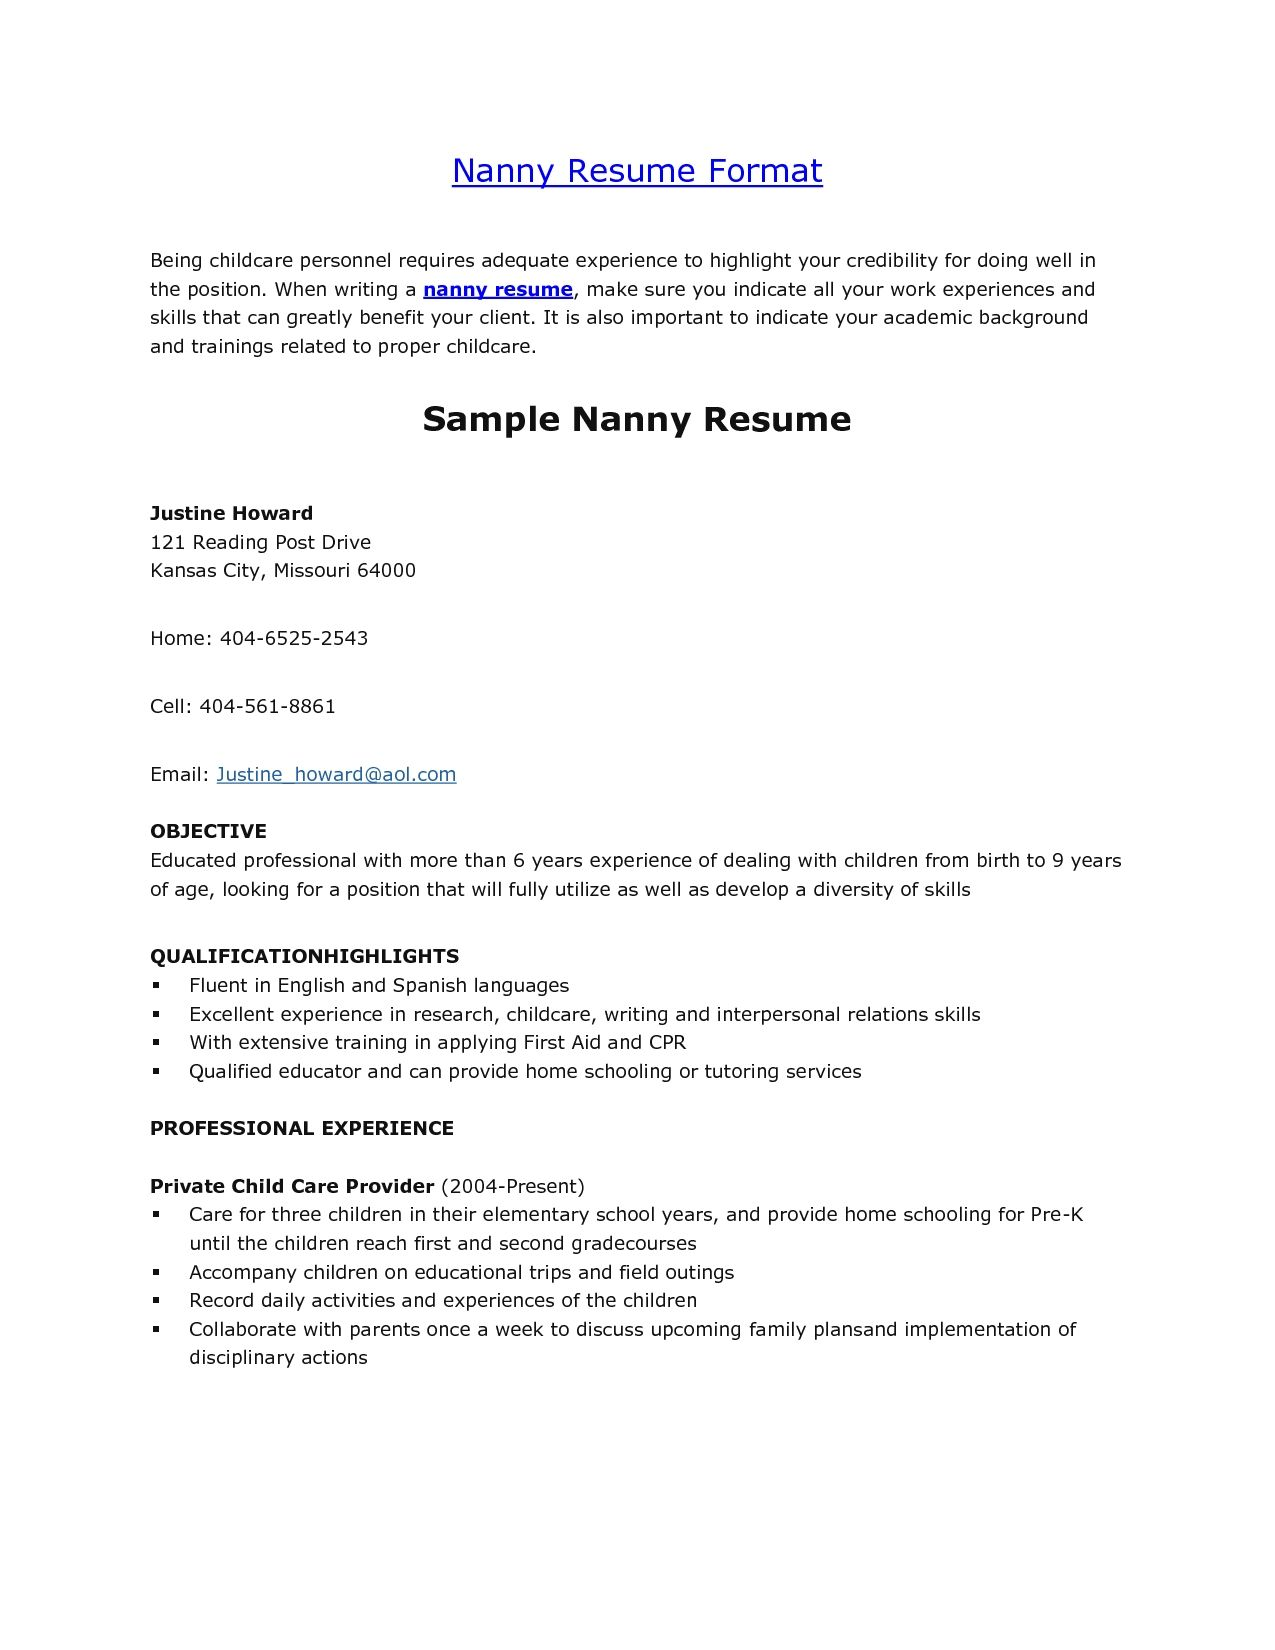 What To Put On A Cover Letter For Resume Compares Linux Distributions Major Minor Regional In Simple Table Format Information Such As Price Support